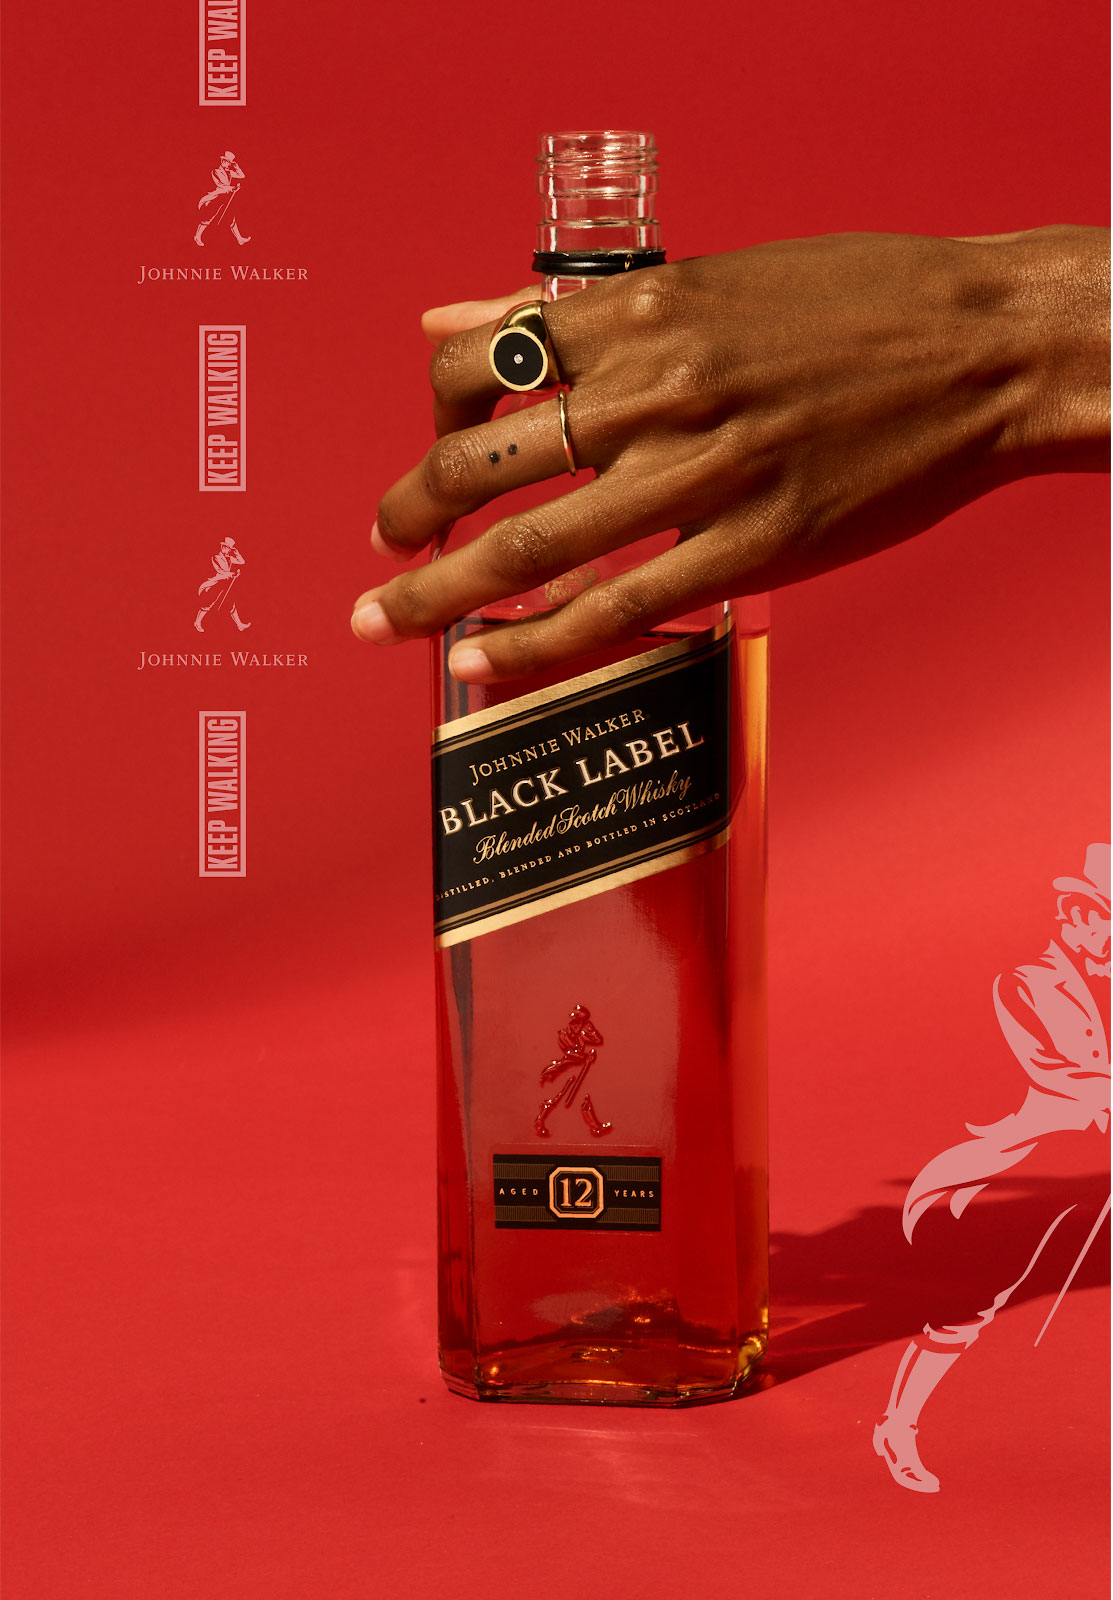 Johnnie Walker was built on challenging conventions and inspiring people to stretch their boundaries. The brand continues to do so with this new campaign.